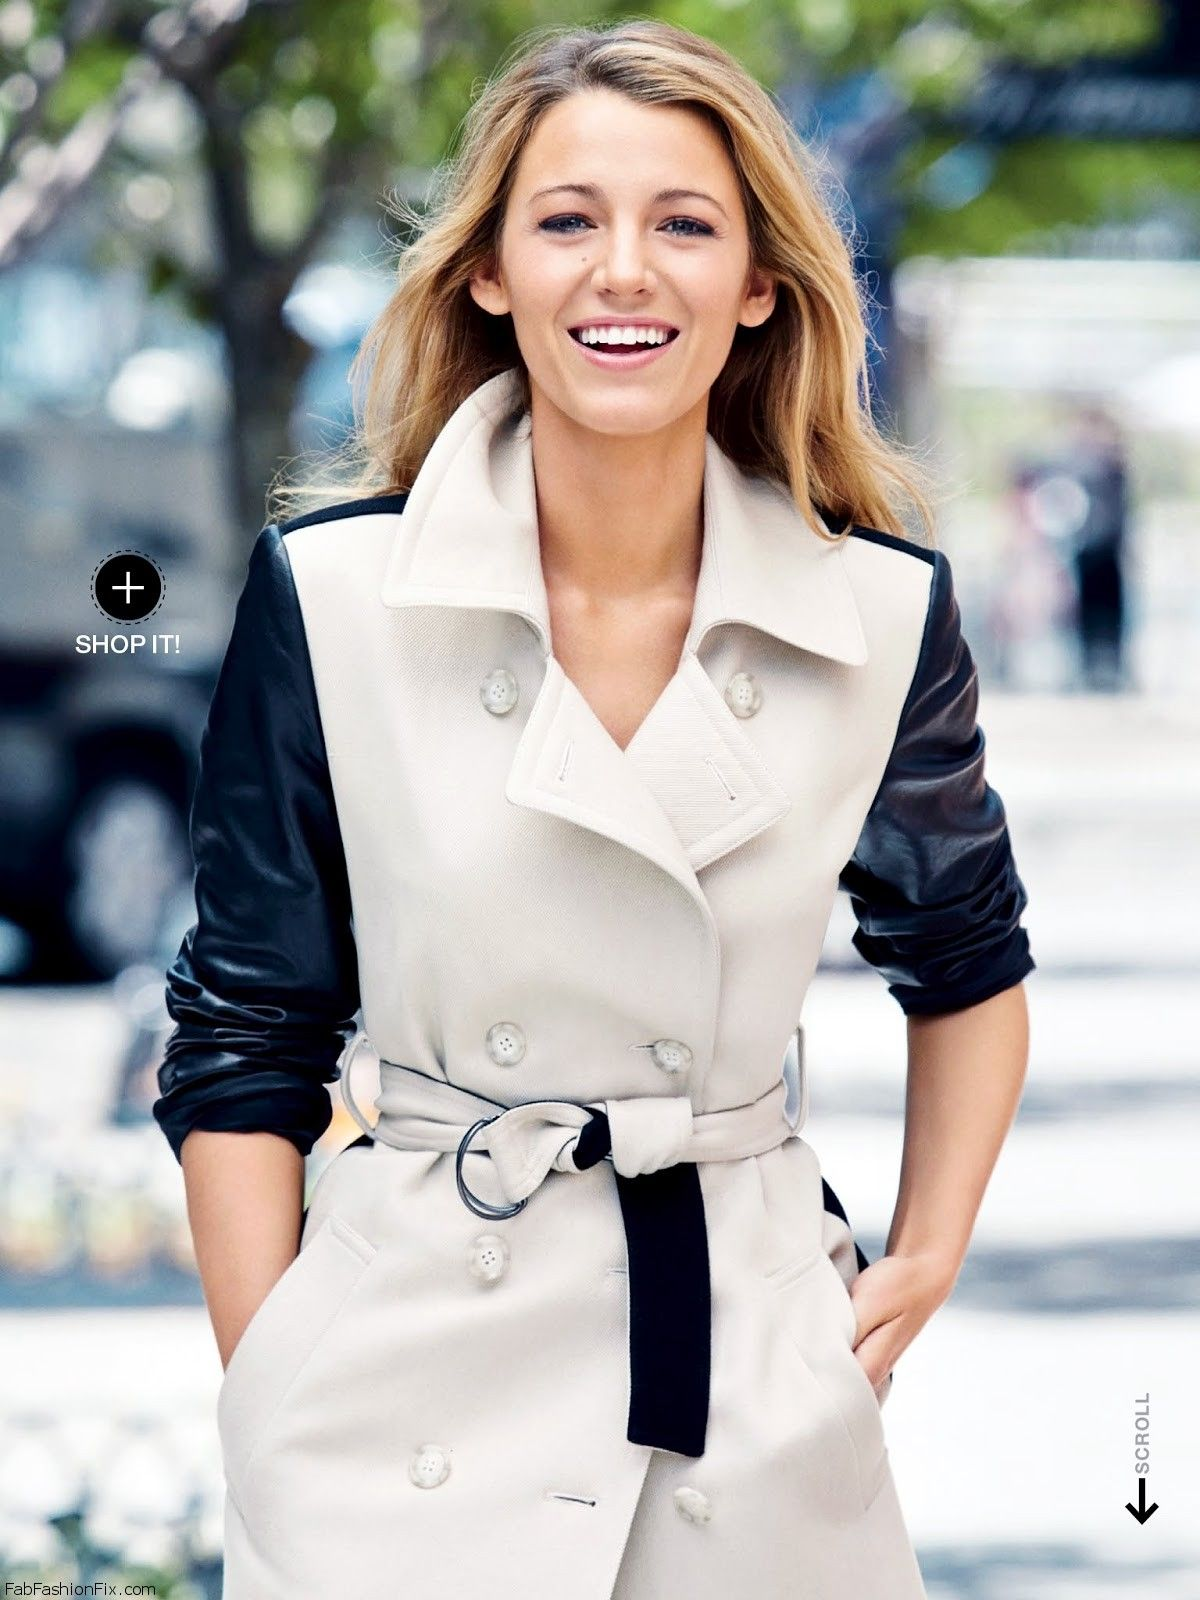 fashion_scans_remastered-blake_lively-lucky-september_2013-scanned_by_vampirehorde-hq-3